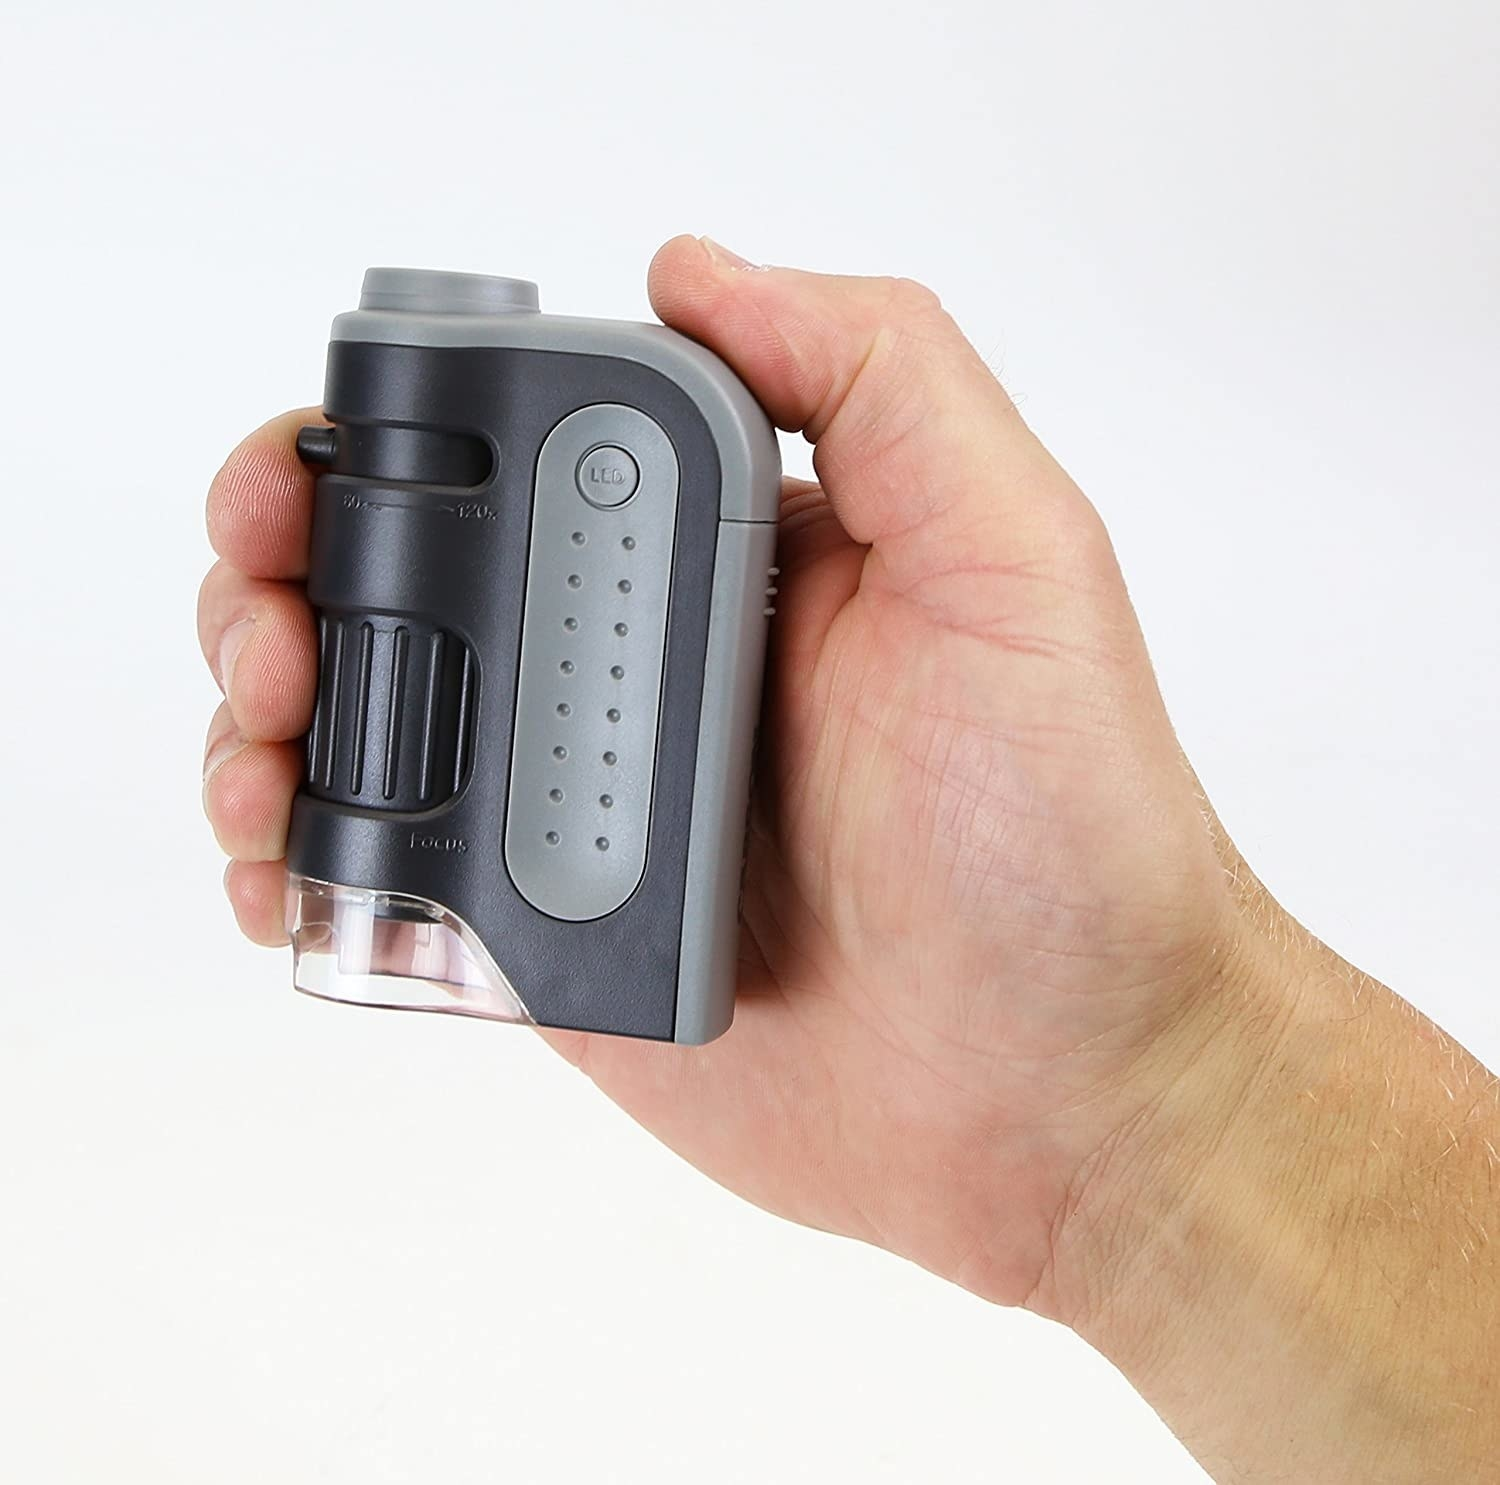 A hand holds up the pocket sized microscope against a plain background to demonstrate its small size